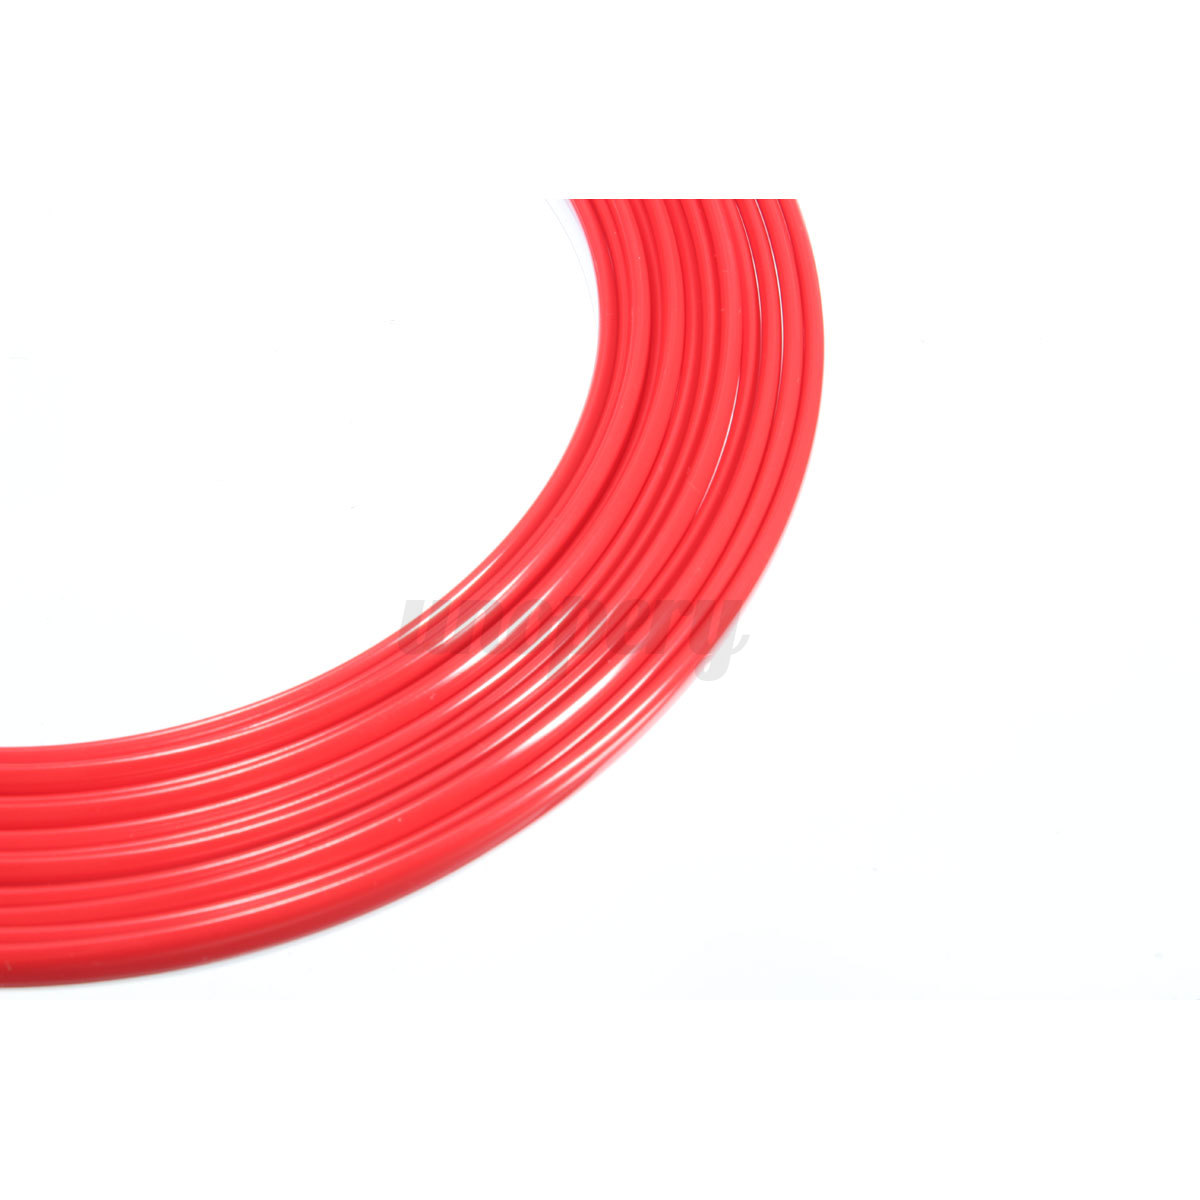 5m car interior edge moulding strip decorative red line for Decor moulding